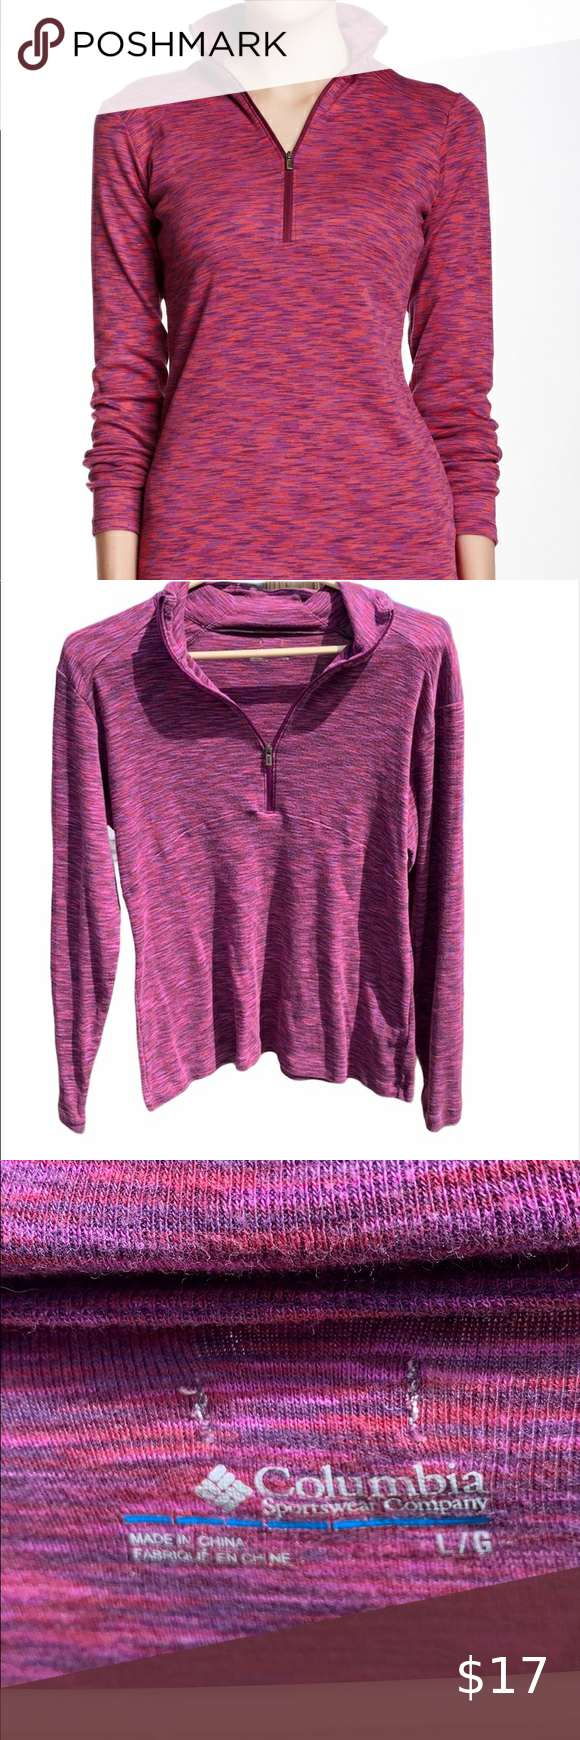 Columbia pull over top